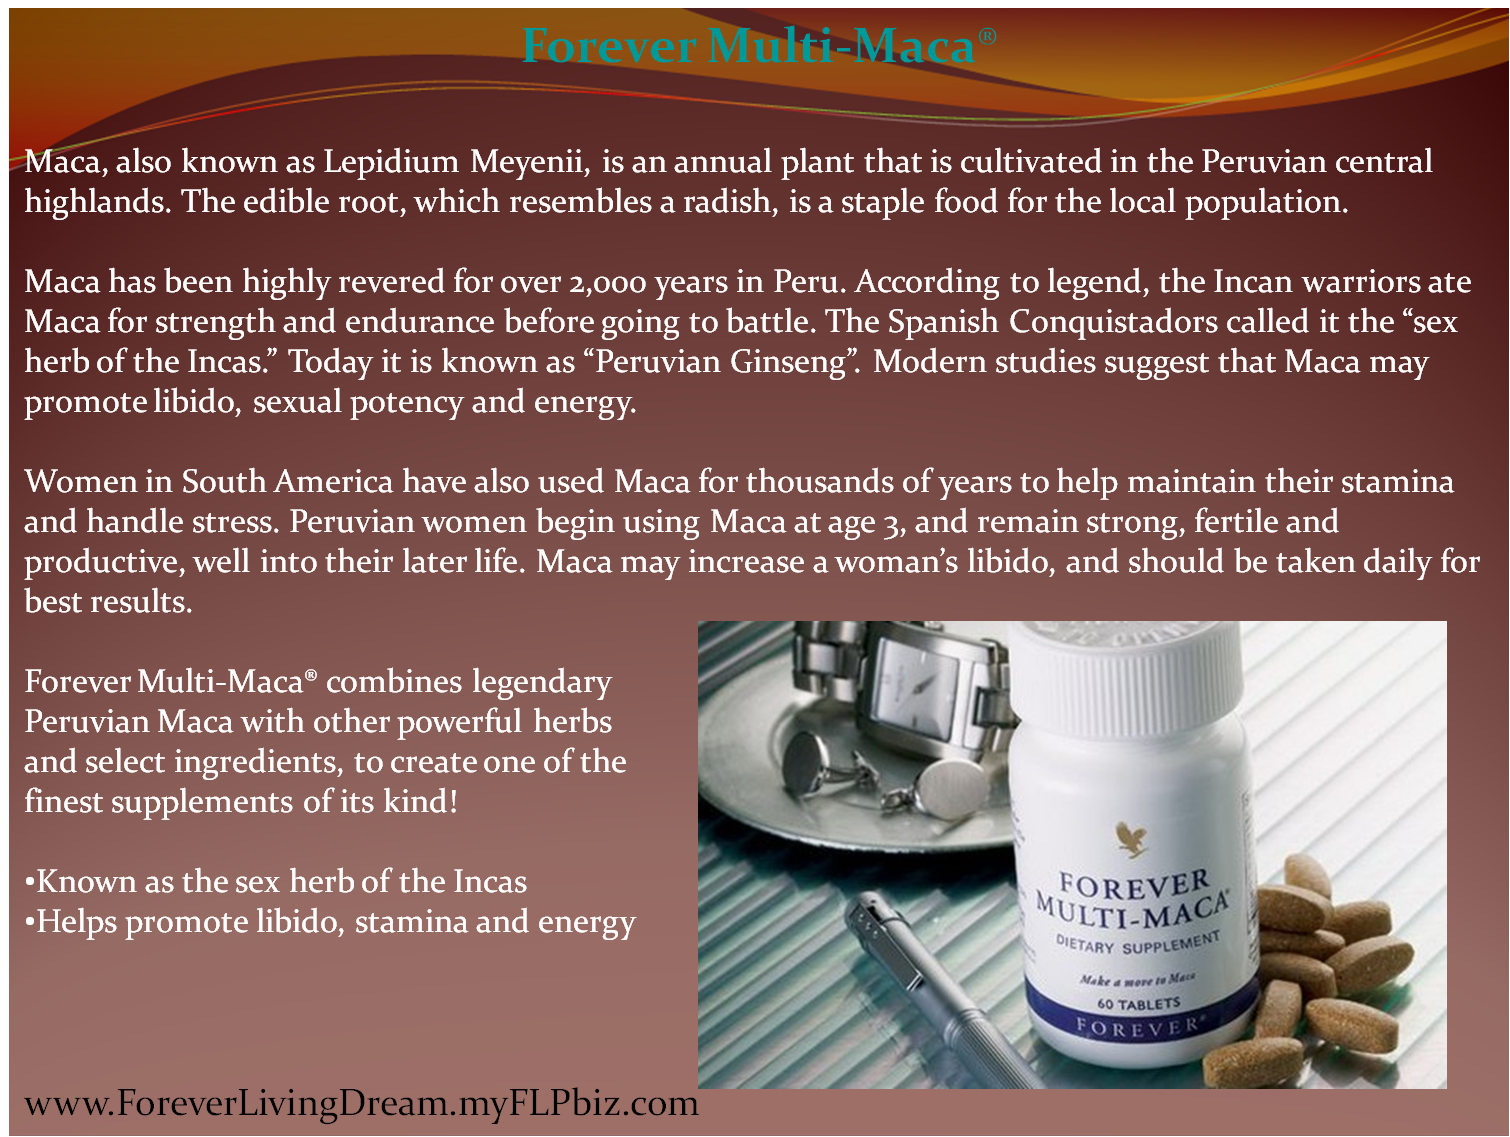 Forever Multi-Maca® | Forever Living Dream